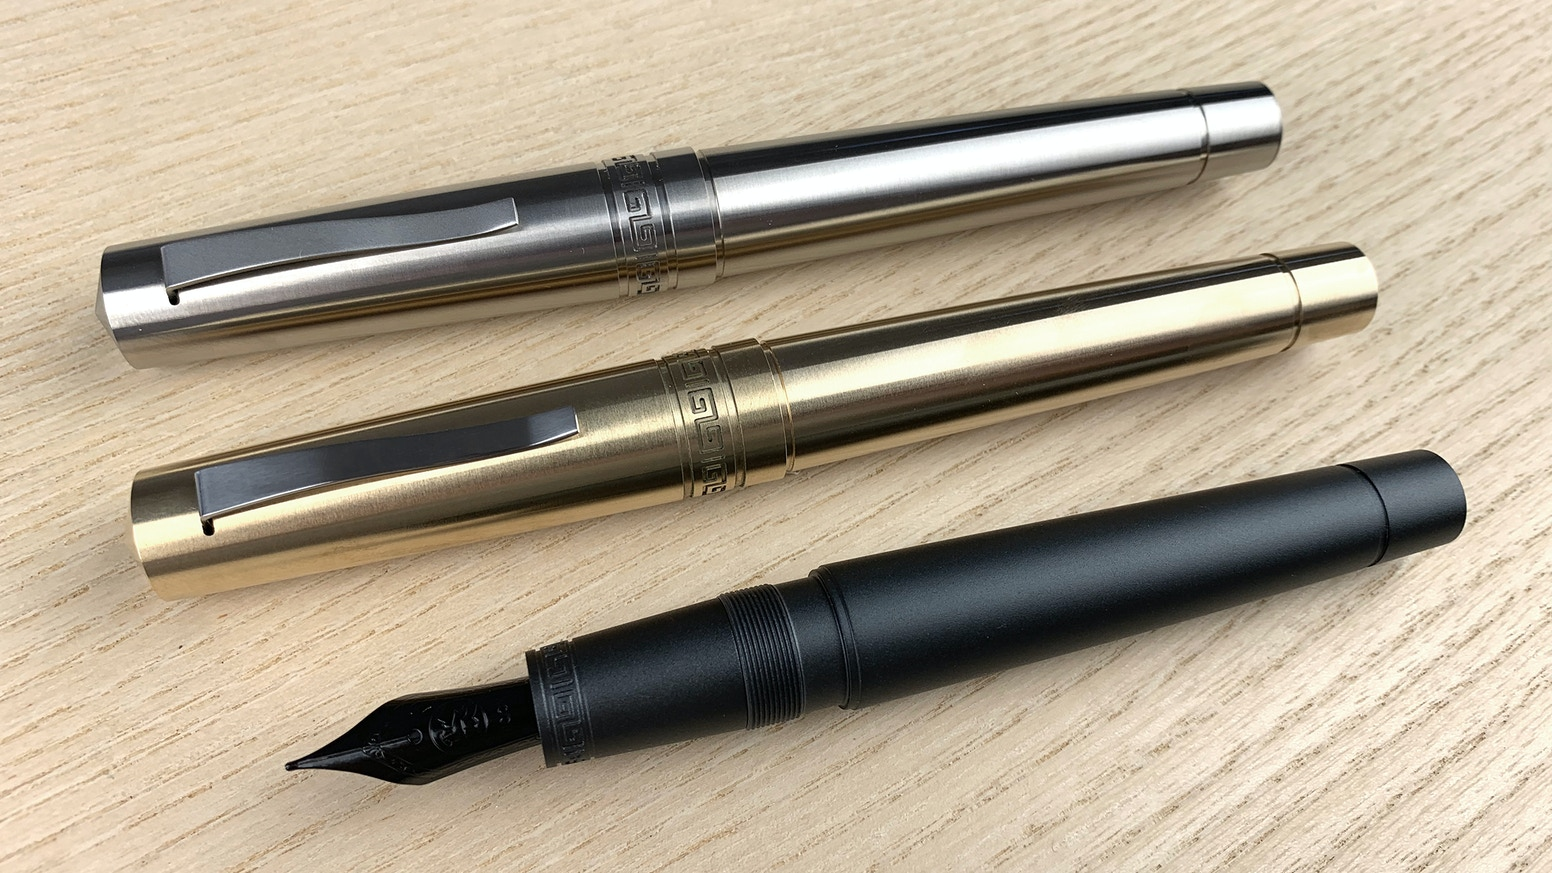 Modern Fountain Pen Inspired by Classic Italian Design. Available in Black Aluminum, Brass, and Titanium.